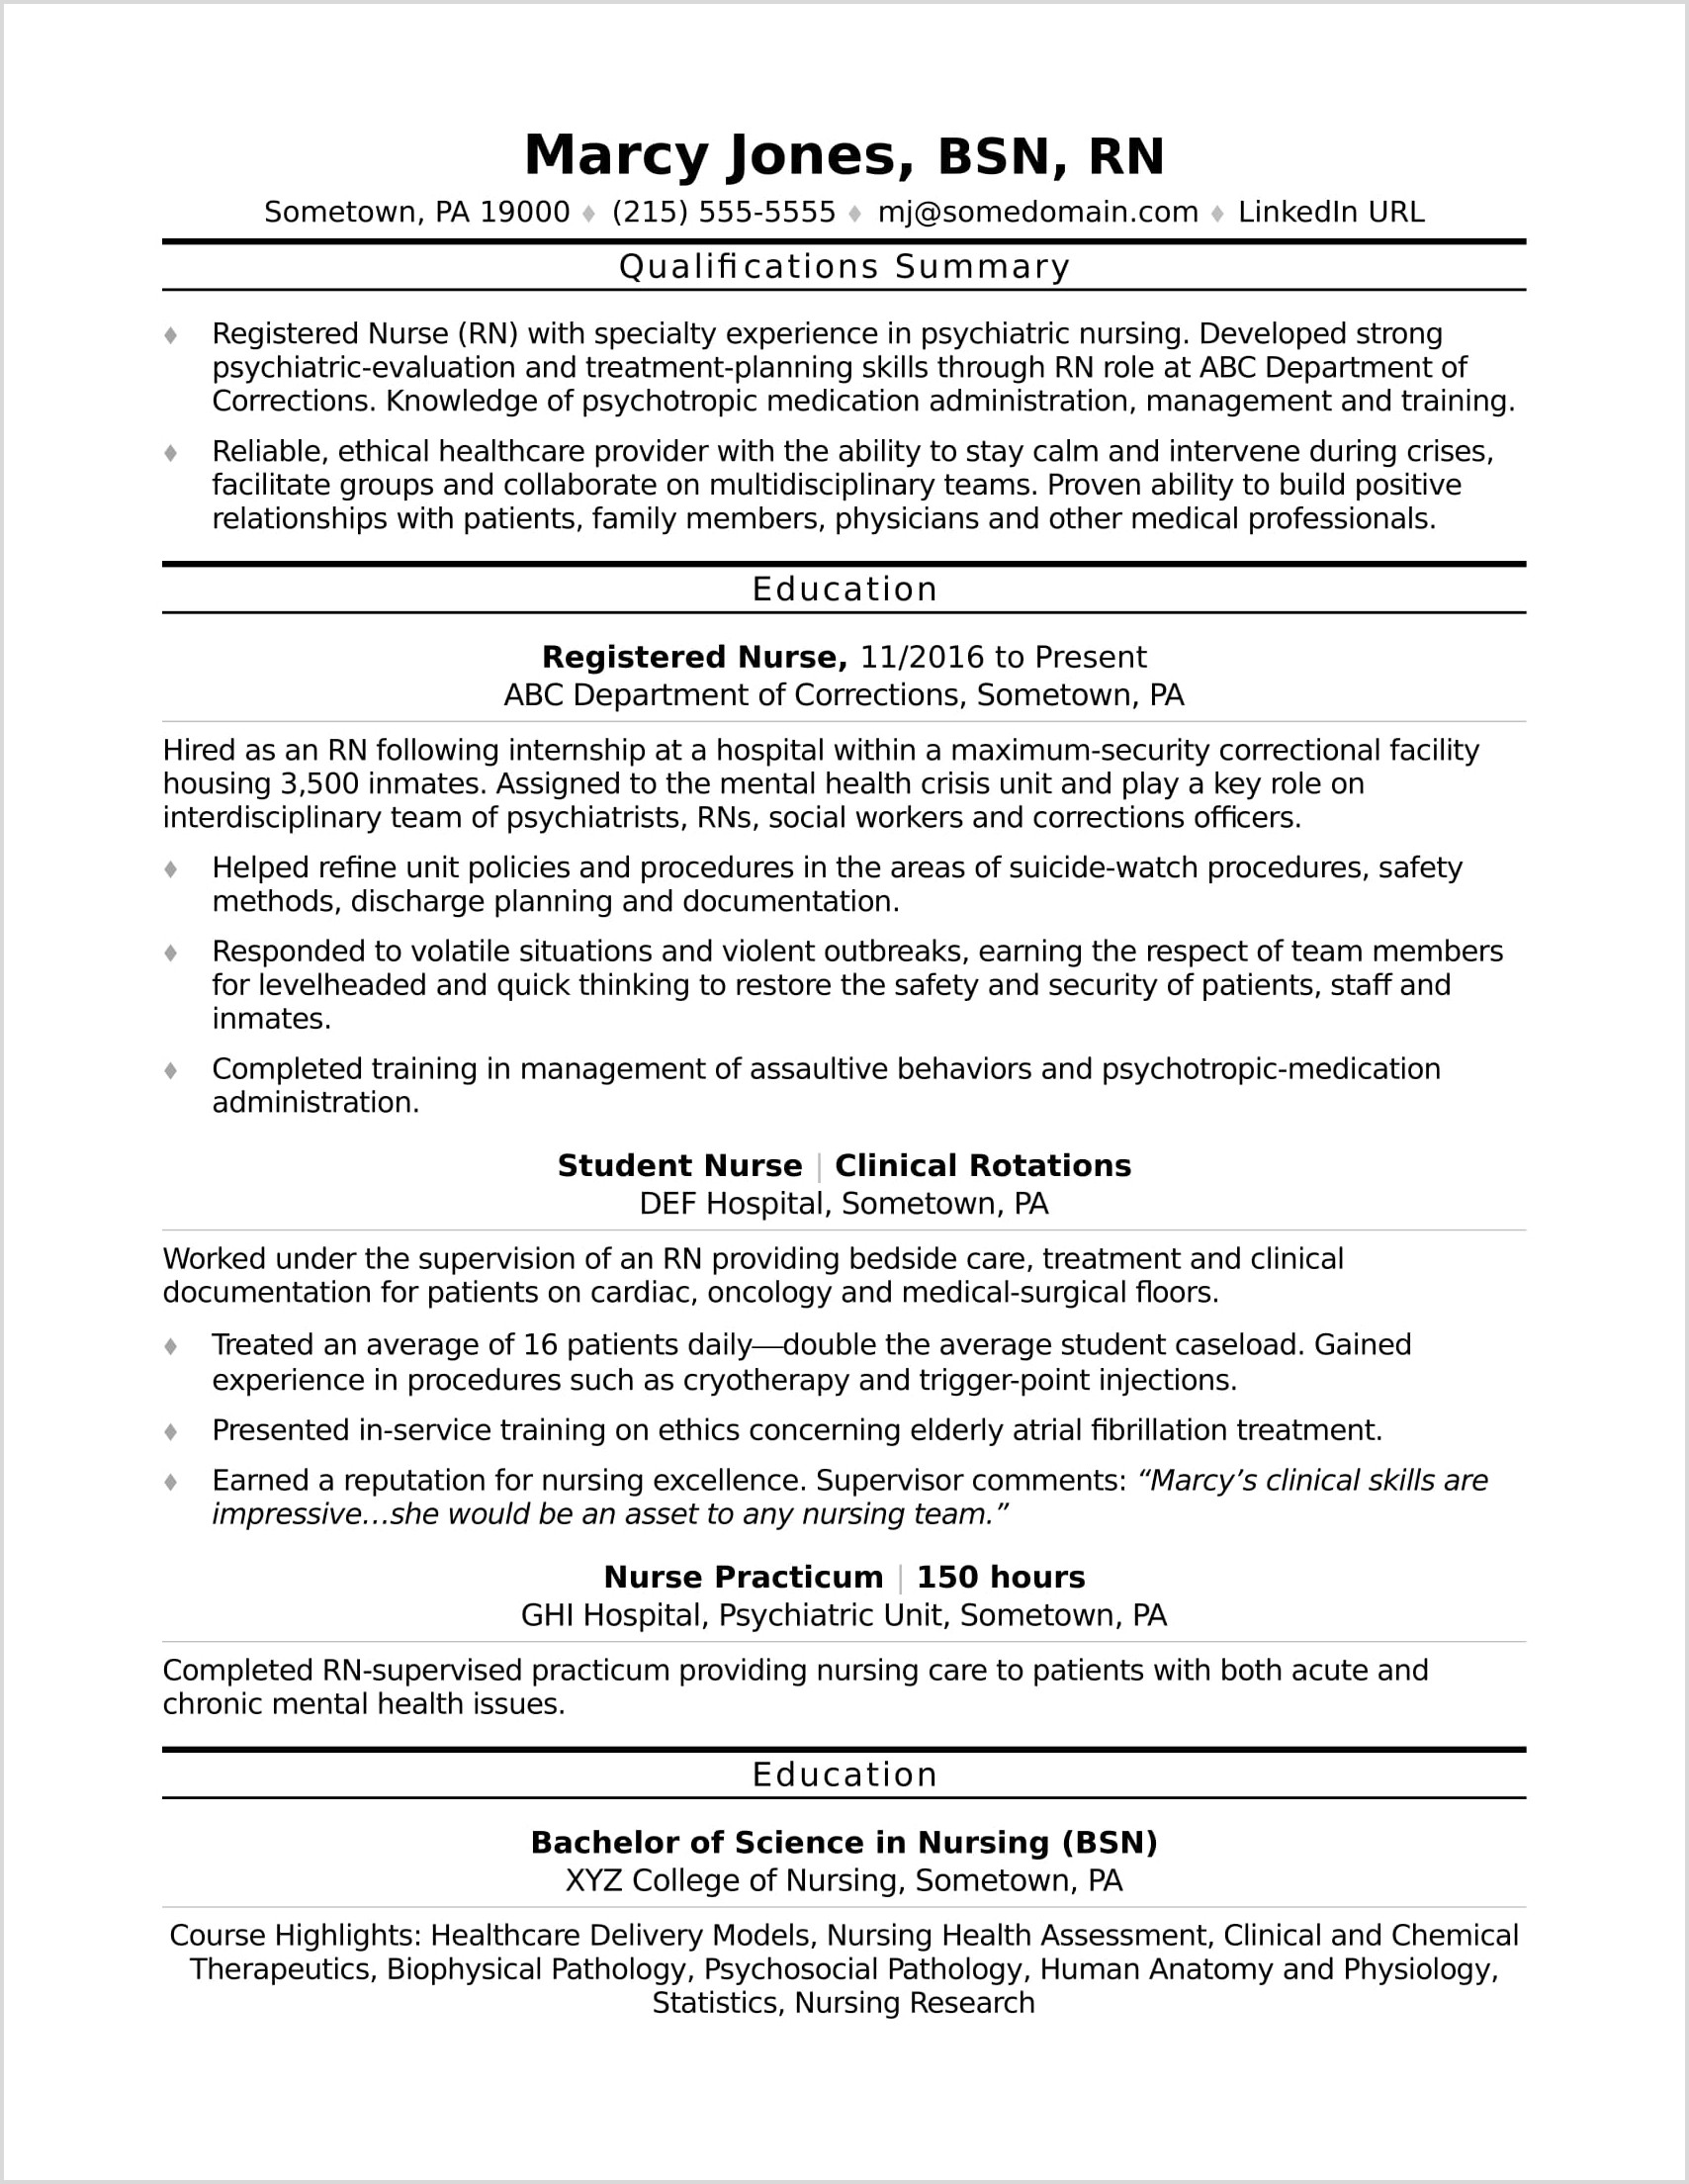 Resume For Registered Nurse With 1 Year Experience